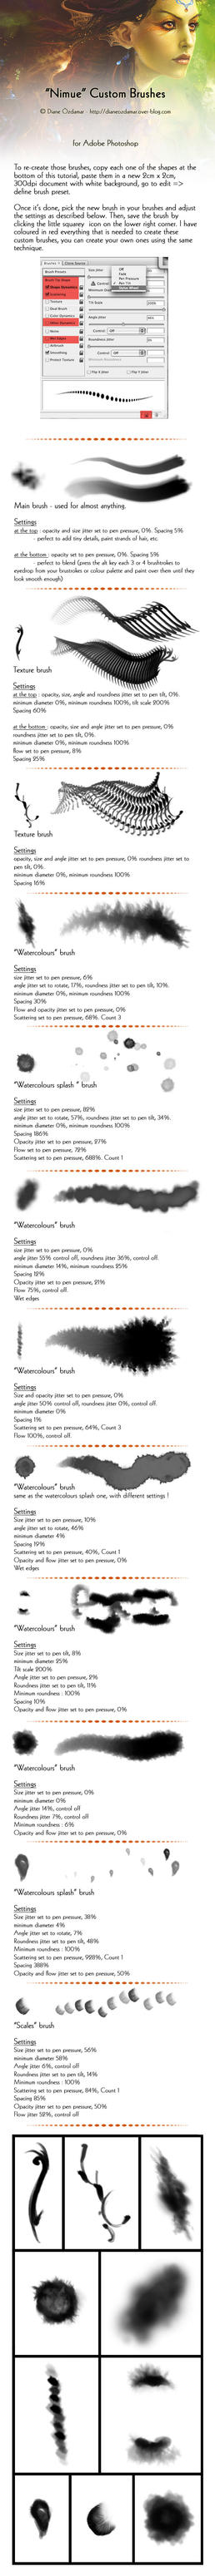 Nimue Brushes Tutorial by Dianae